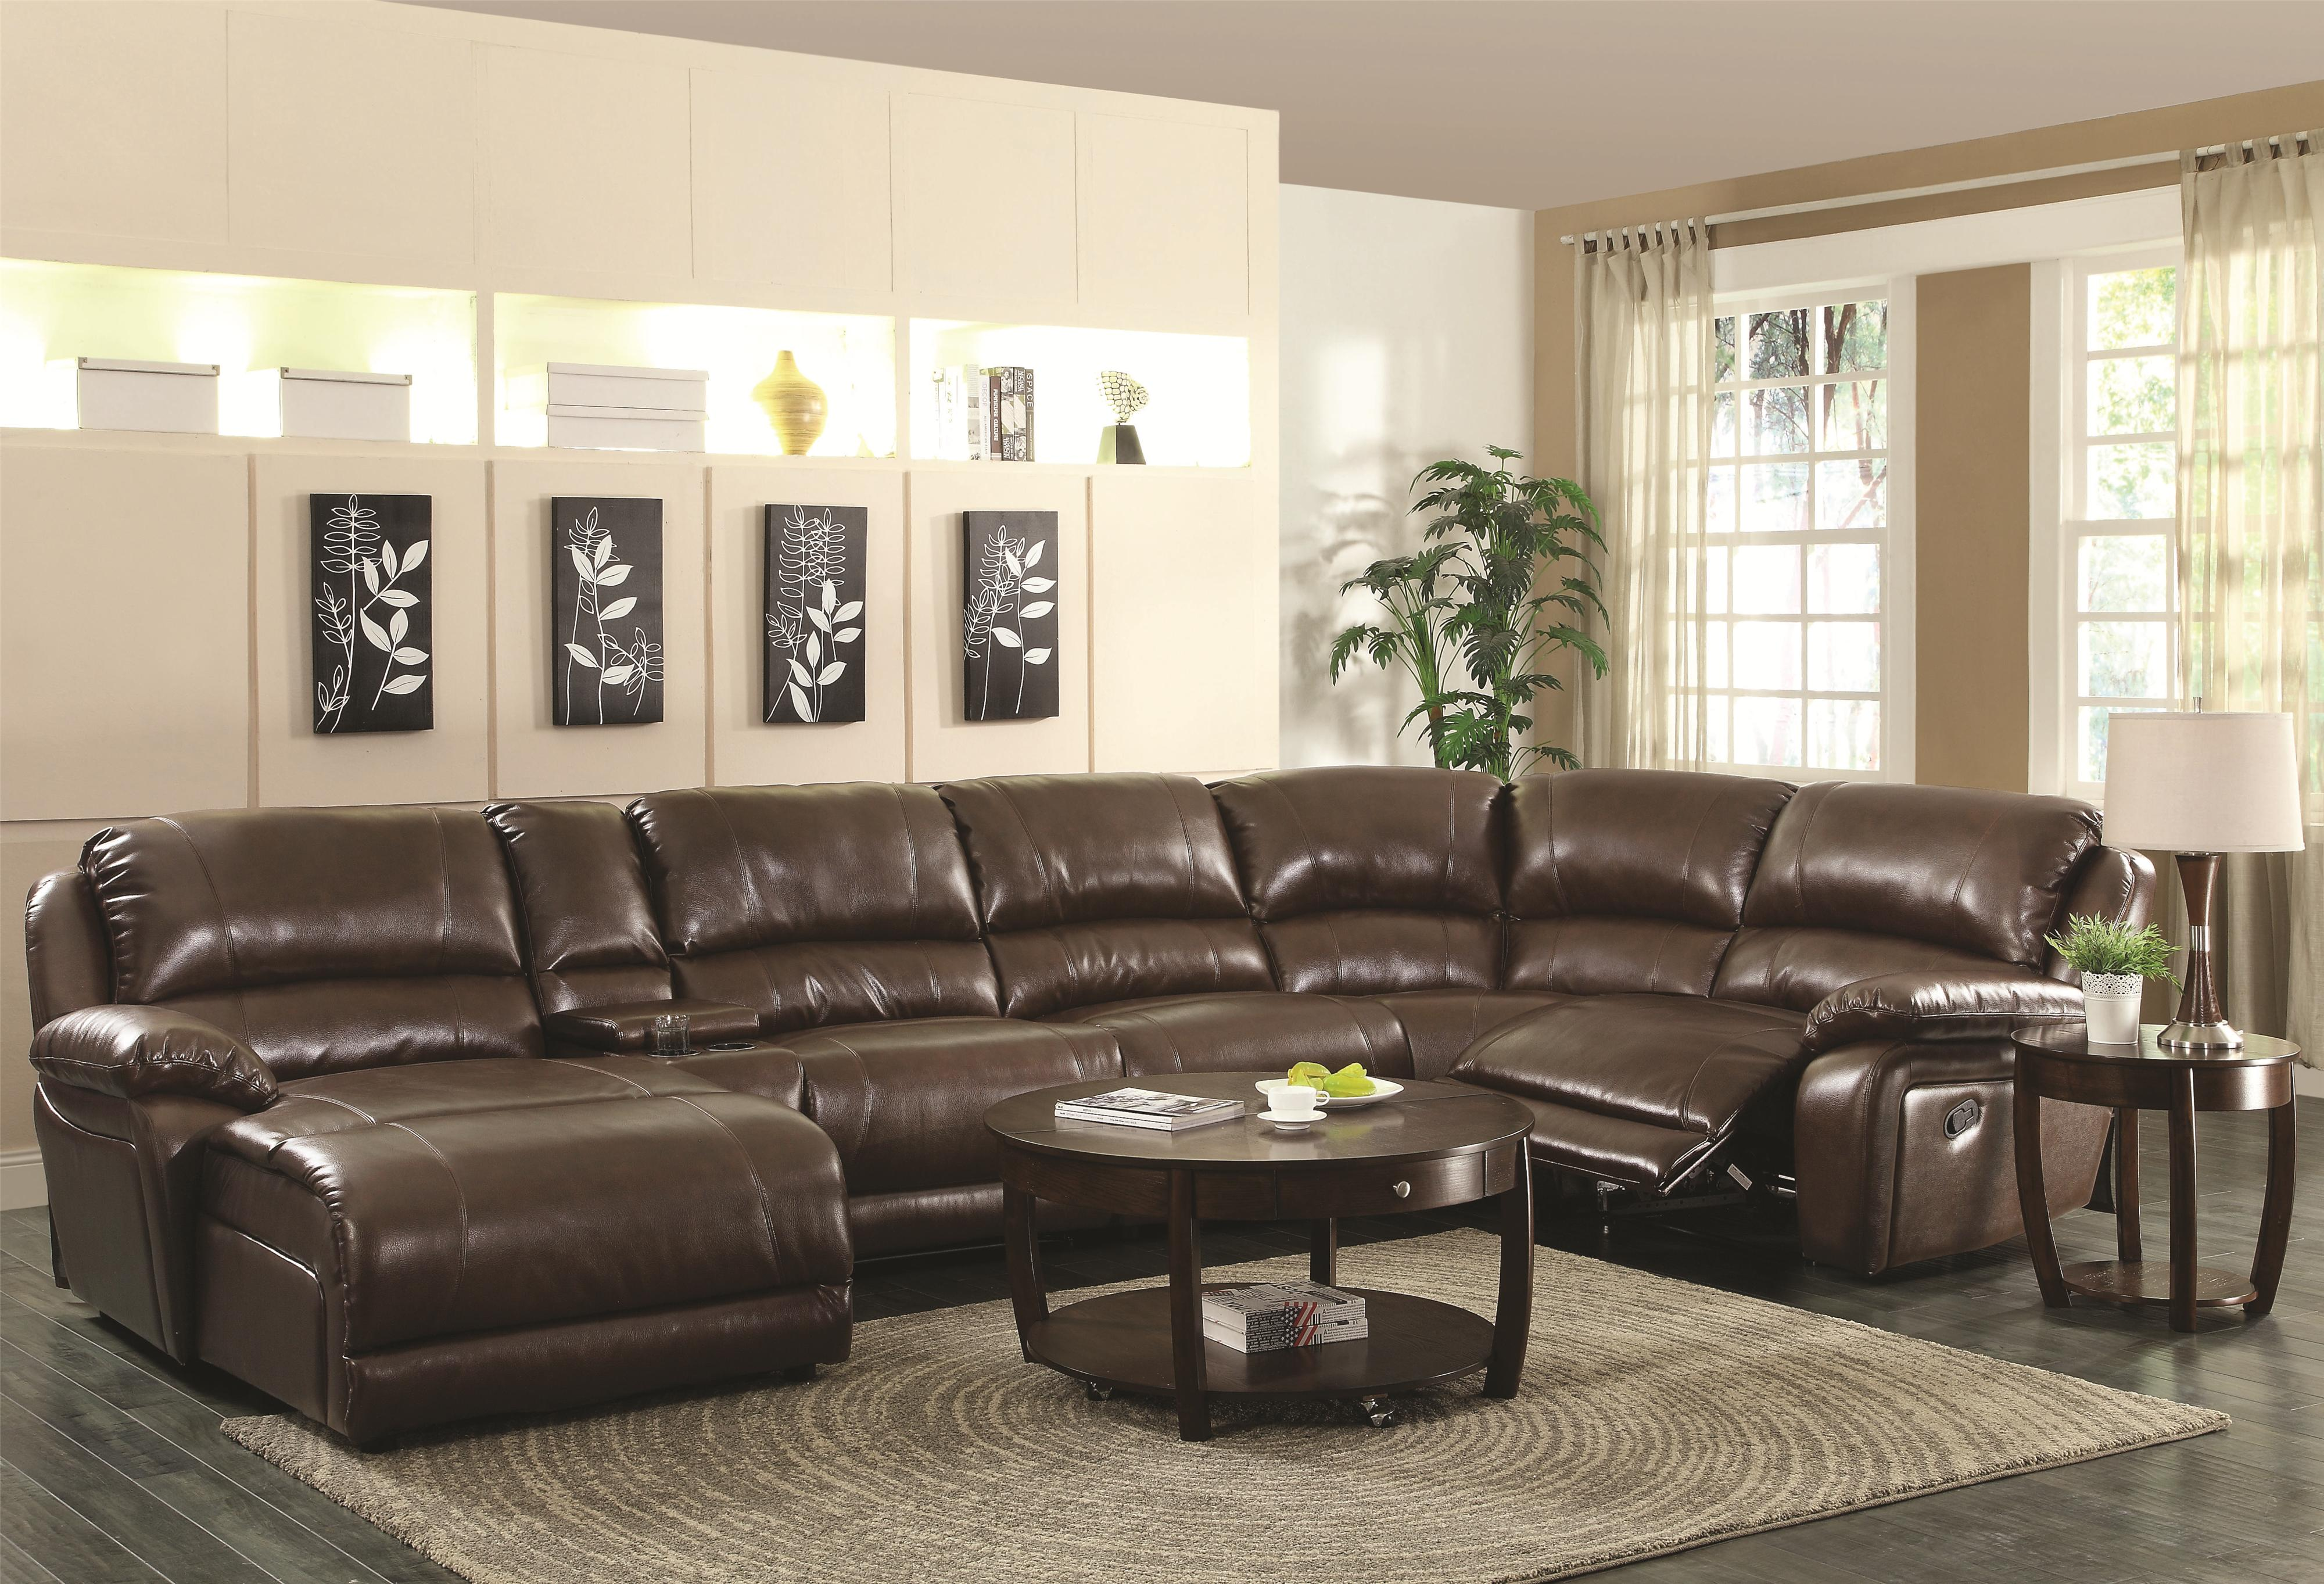 Coaster Mackenzie Chestnut 6 Piece Reclining Sectional Sofa With Casual Style Fine Furniture